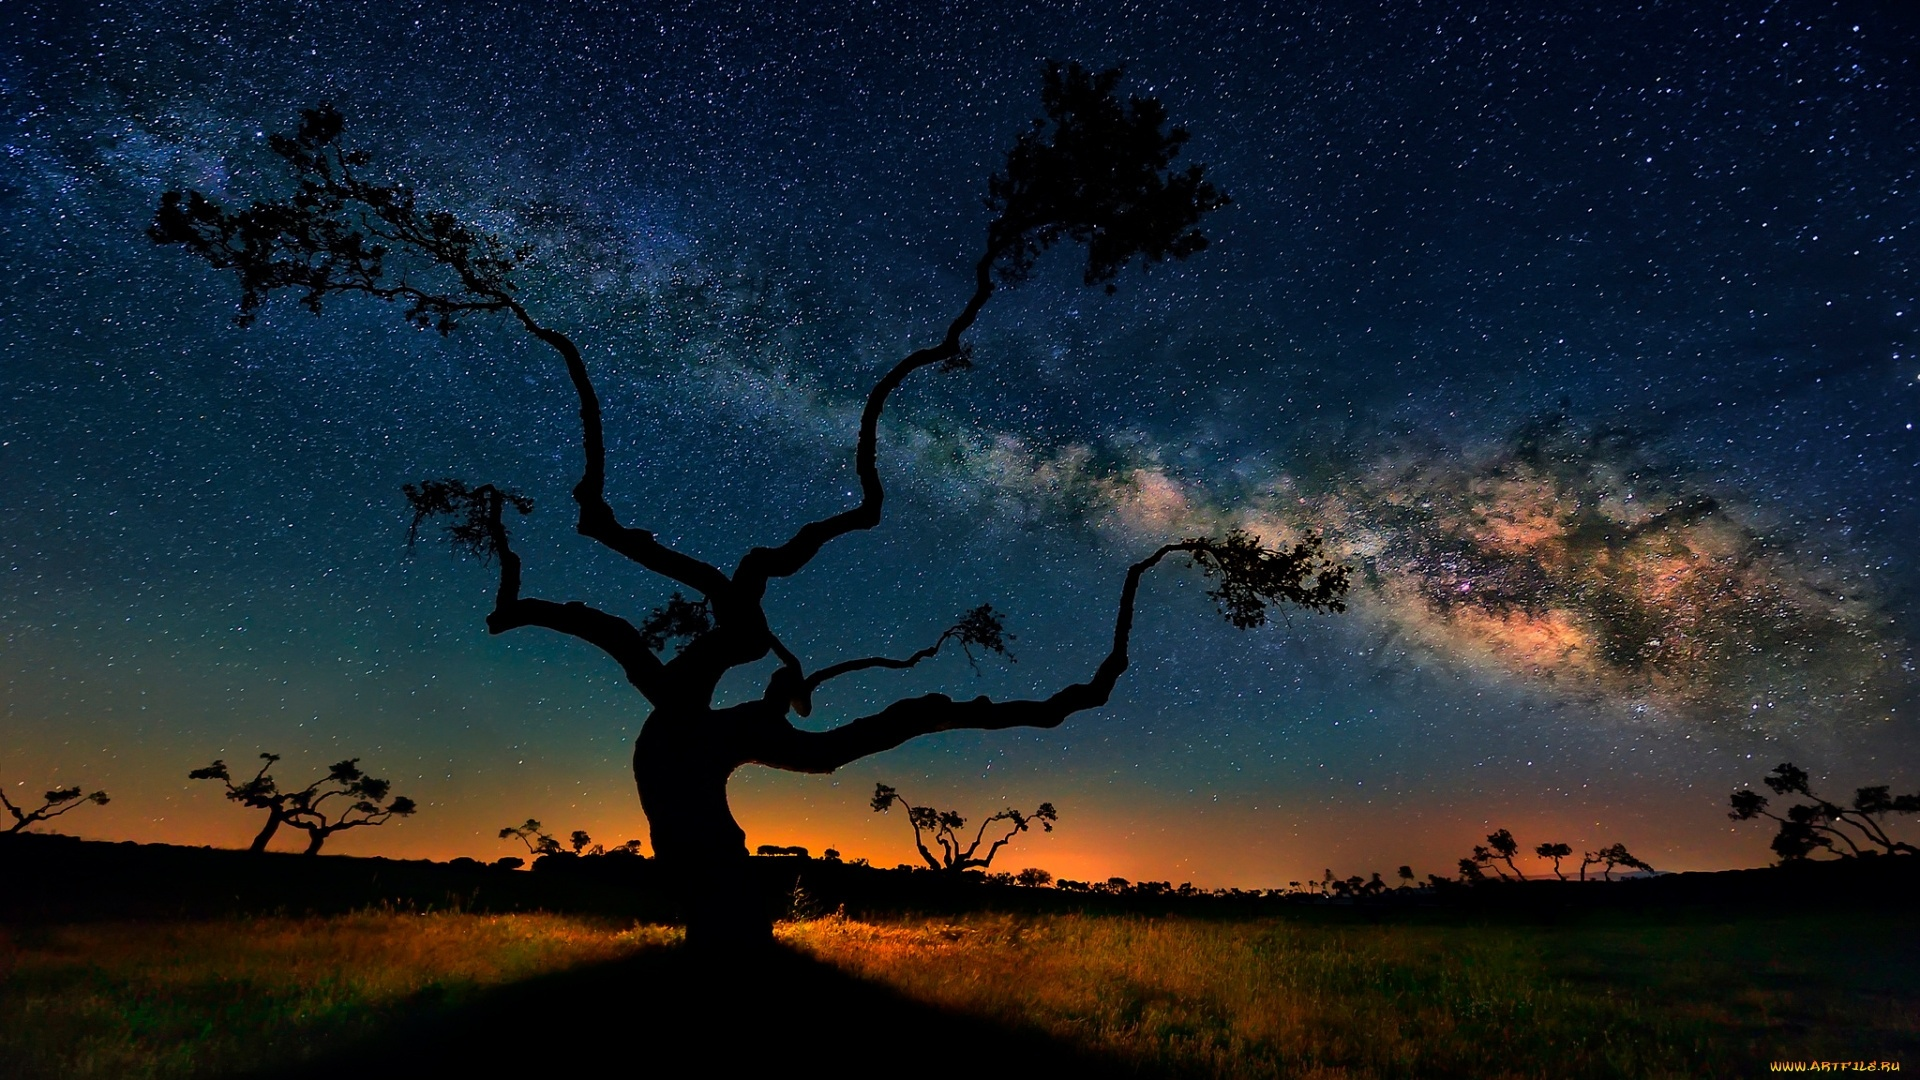 Tree And Space wallpaper for computer